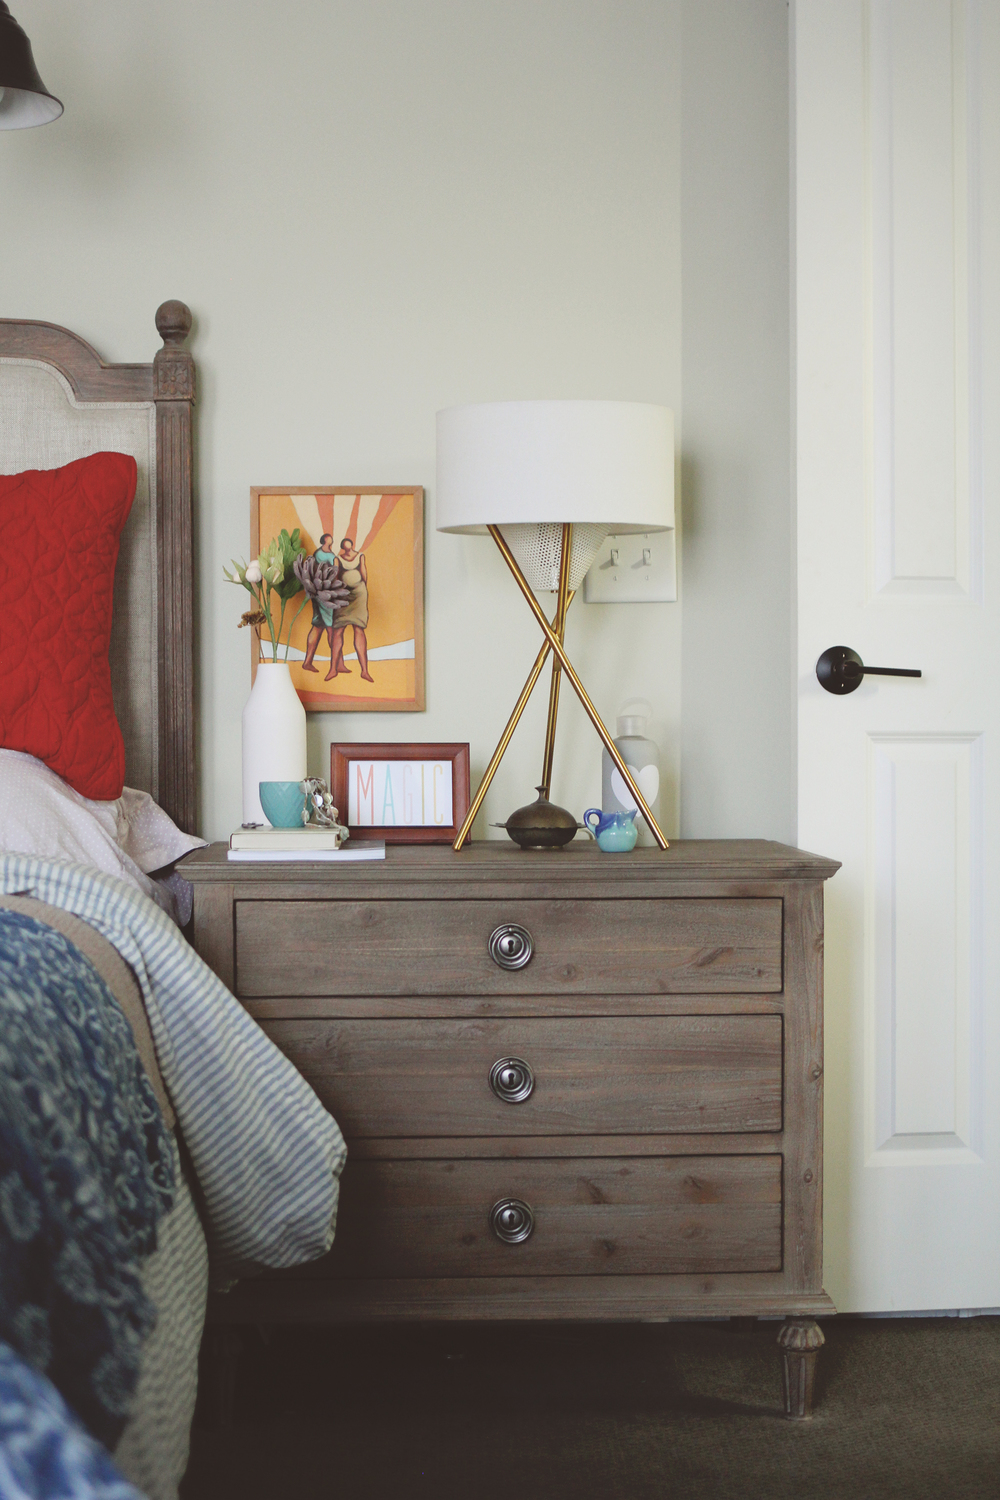 jo-torrijos-a-simpler-design-atlanta-interior-design-ajc-master-bedroom-styled-18.jpg